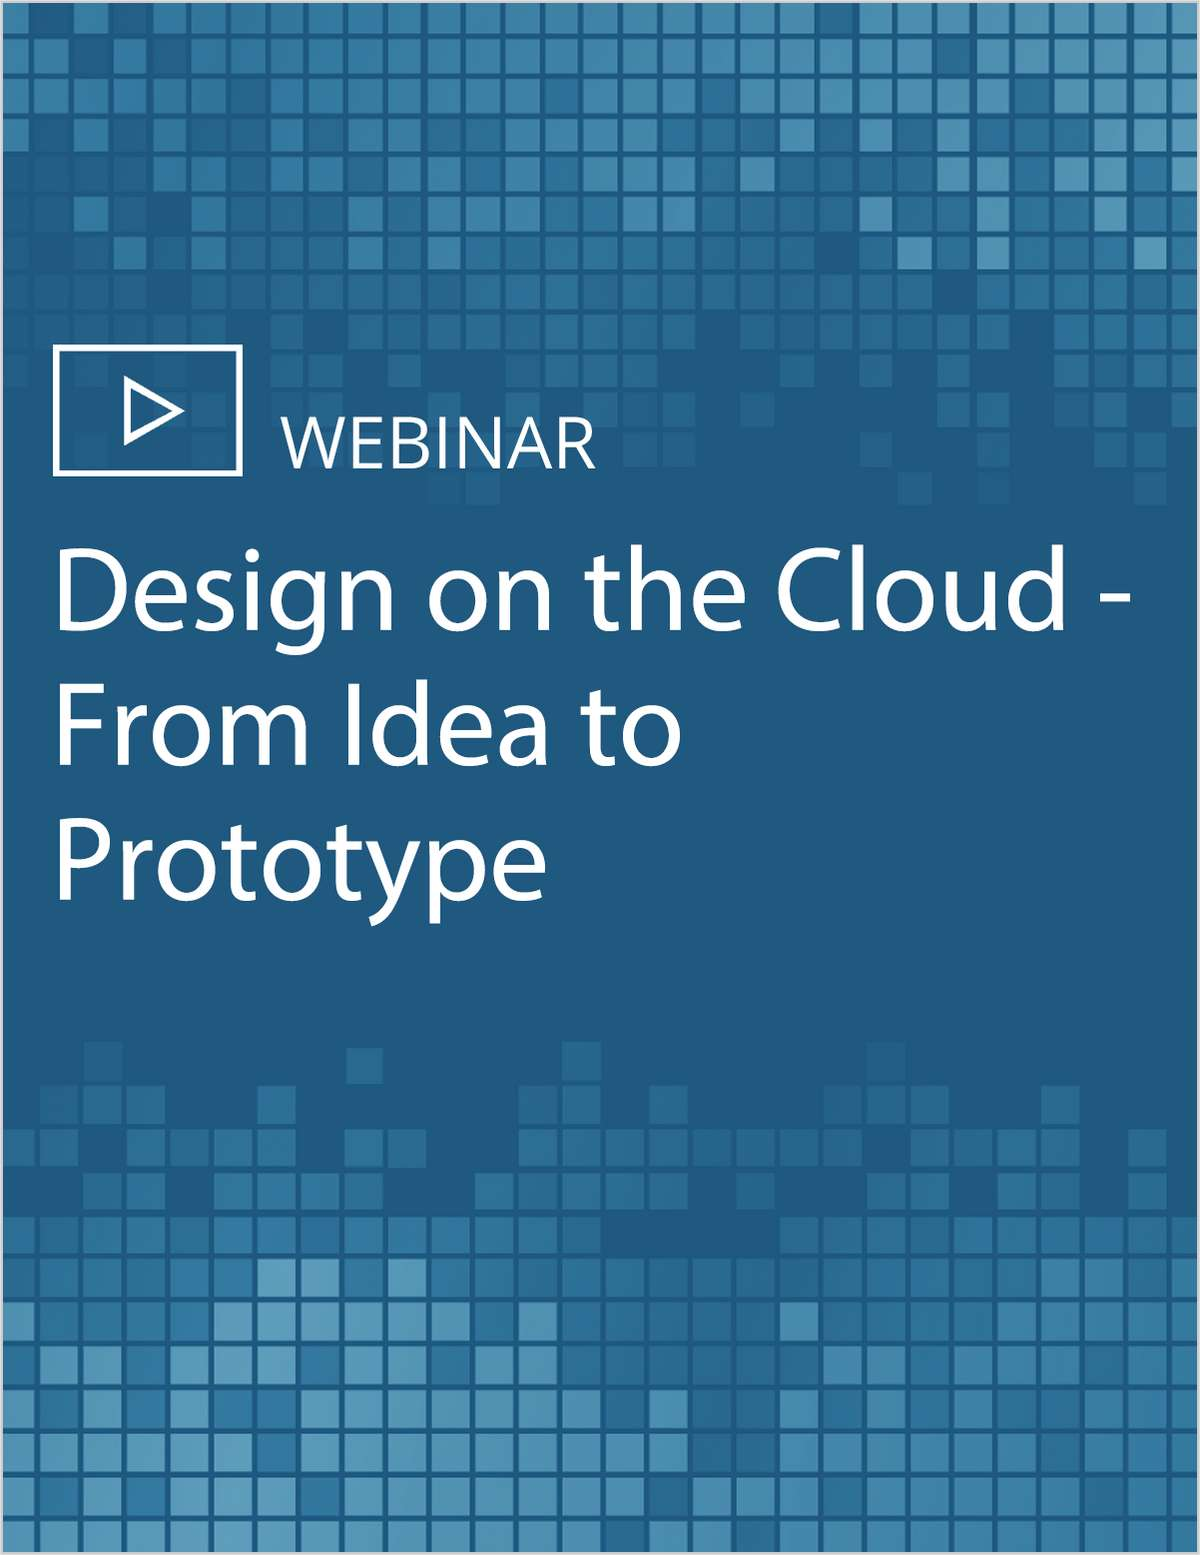 Design on the Cloud - From Idea to Prototype